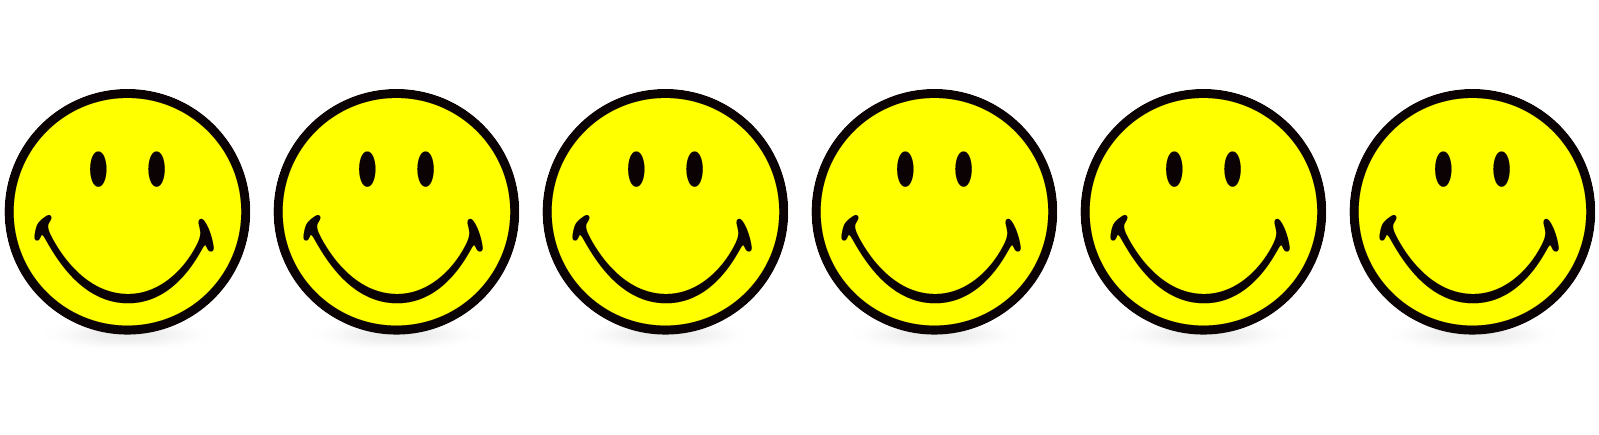 Image result for smiley face#""